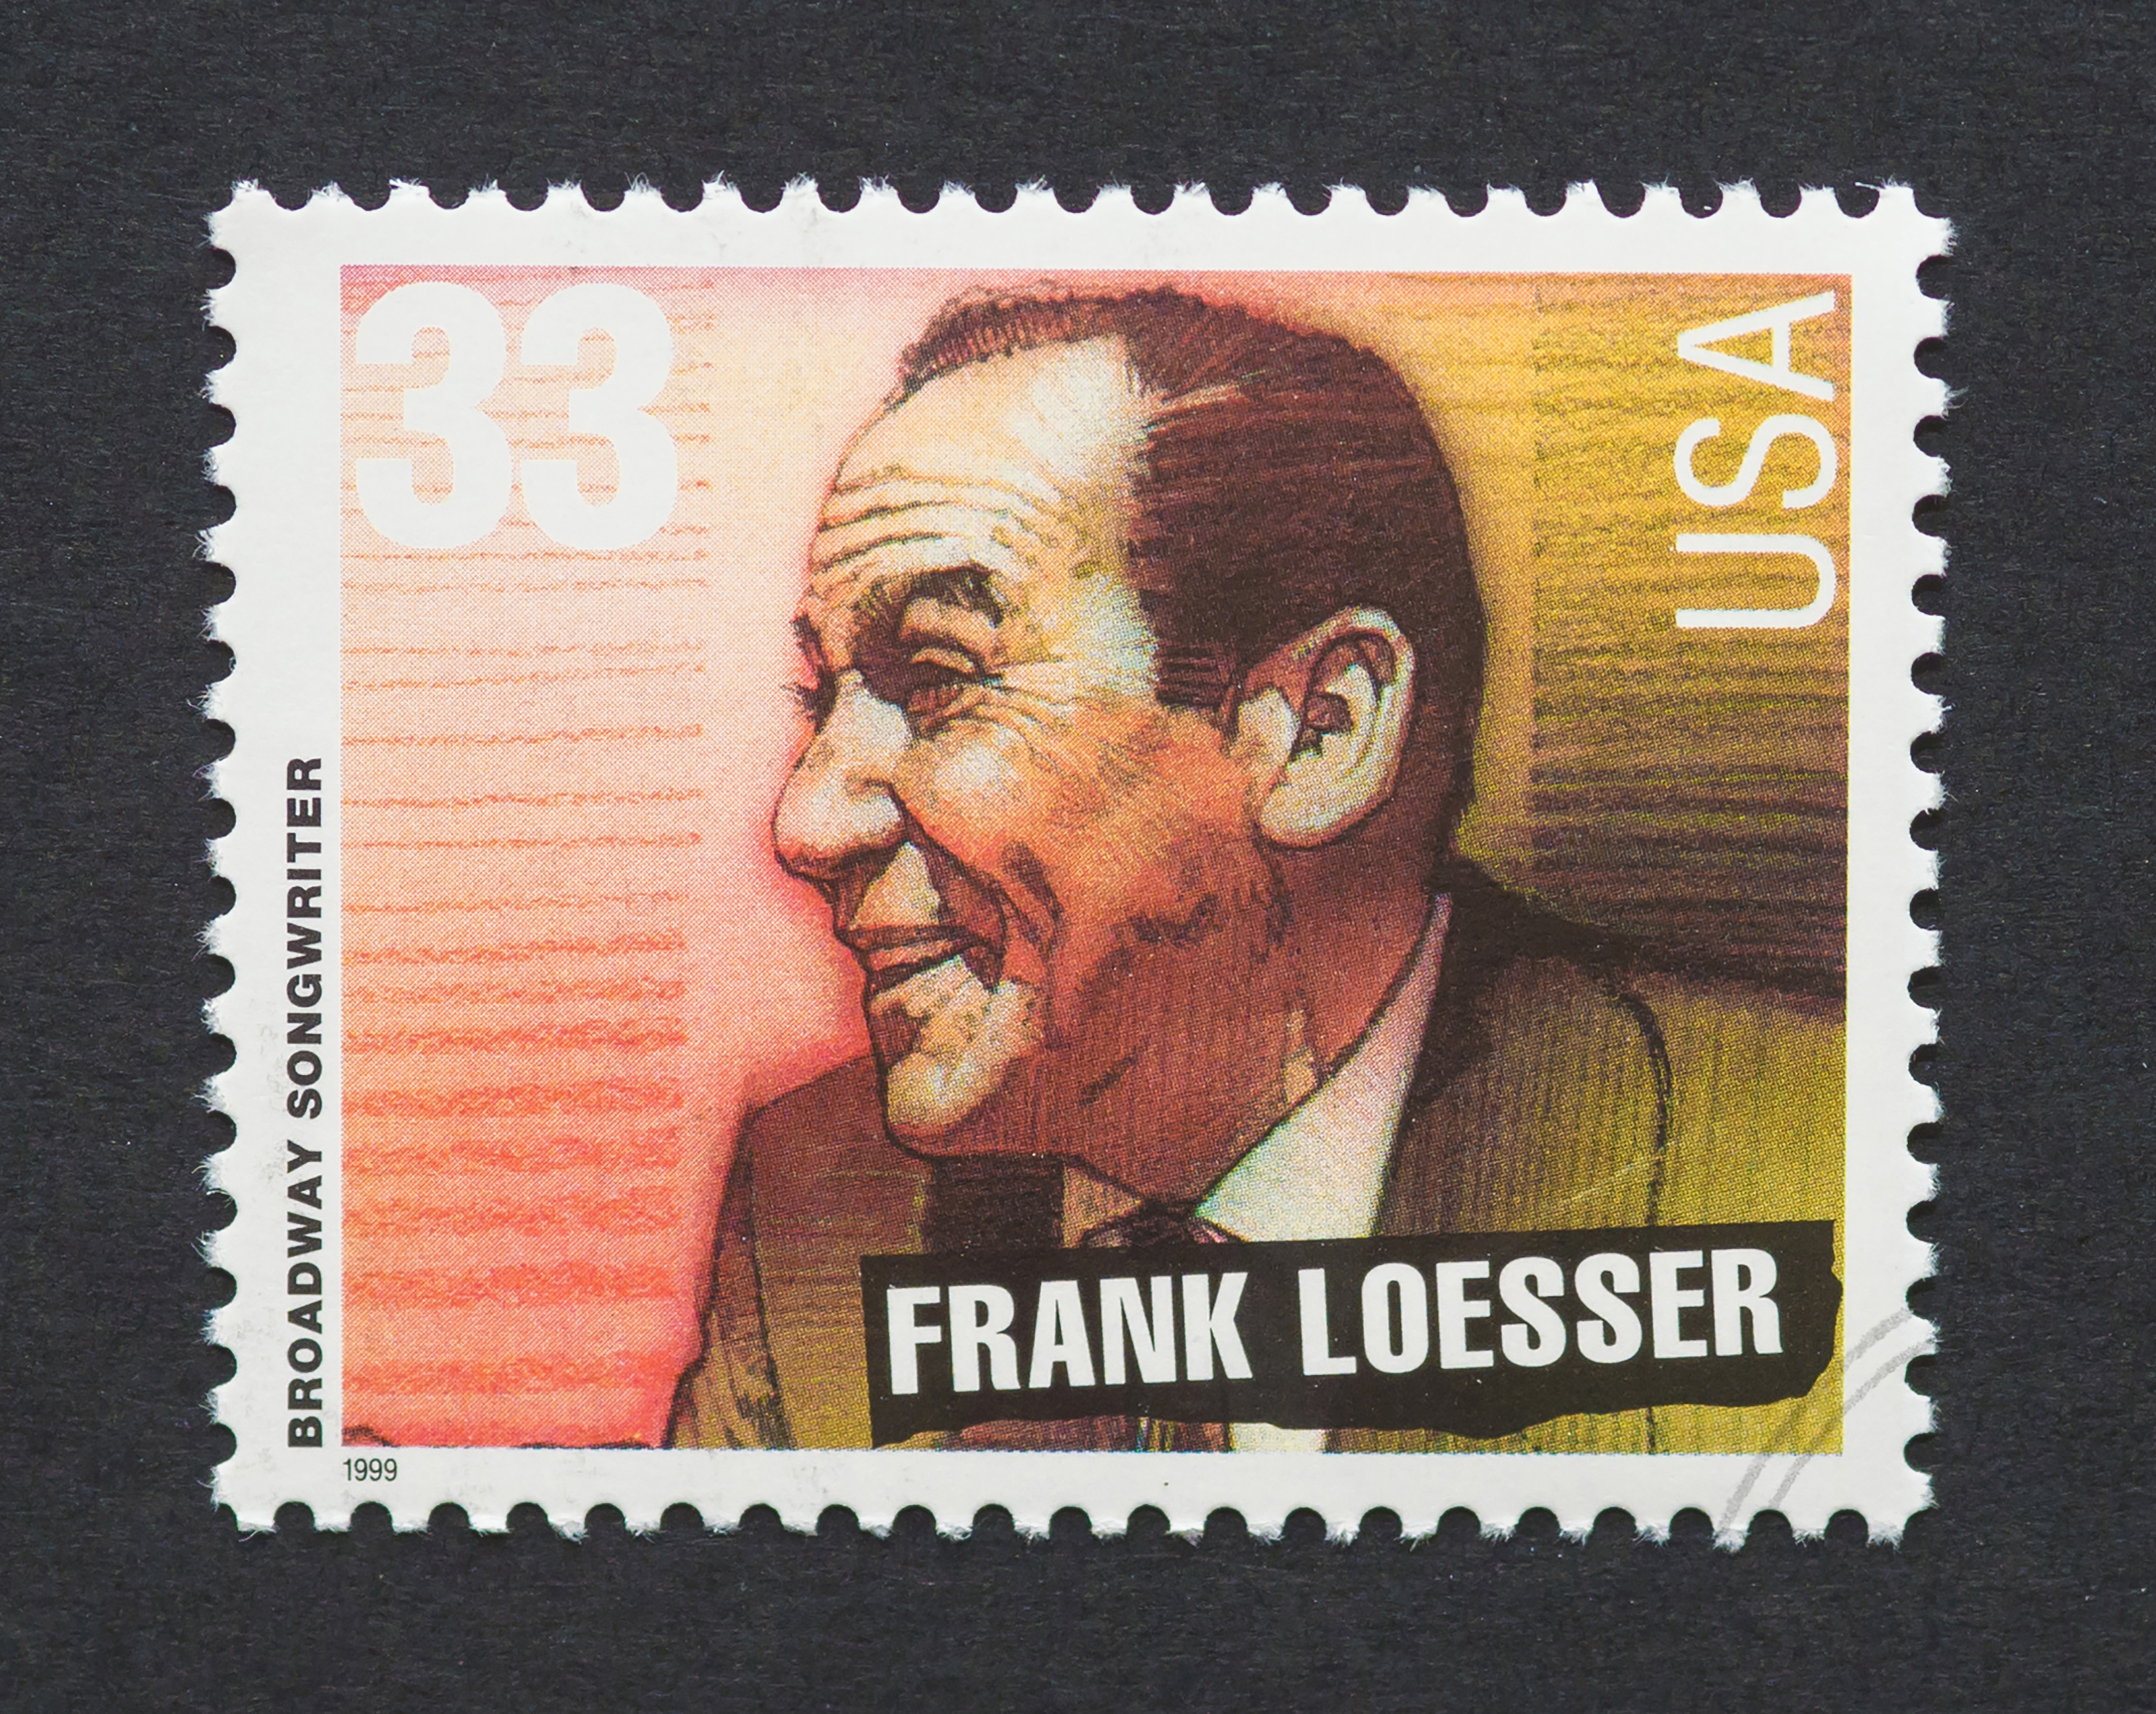 Broadway songwriter Frank Loesser's likeness appears on a postage stamp. Shutterstock image via user catwalker